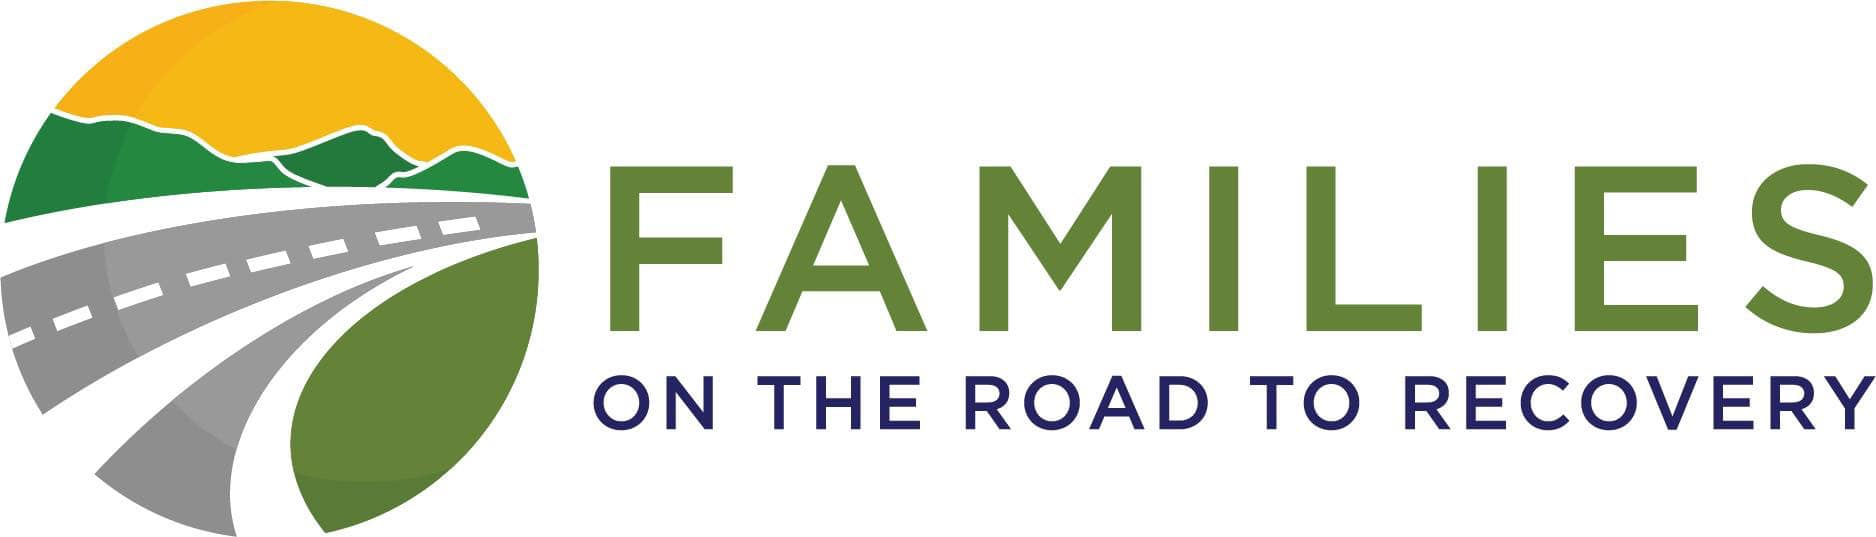 Families on the Road to Recovery Feb 25th 6:30-8:00pm